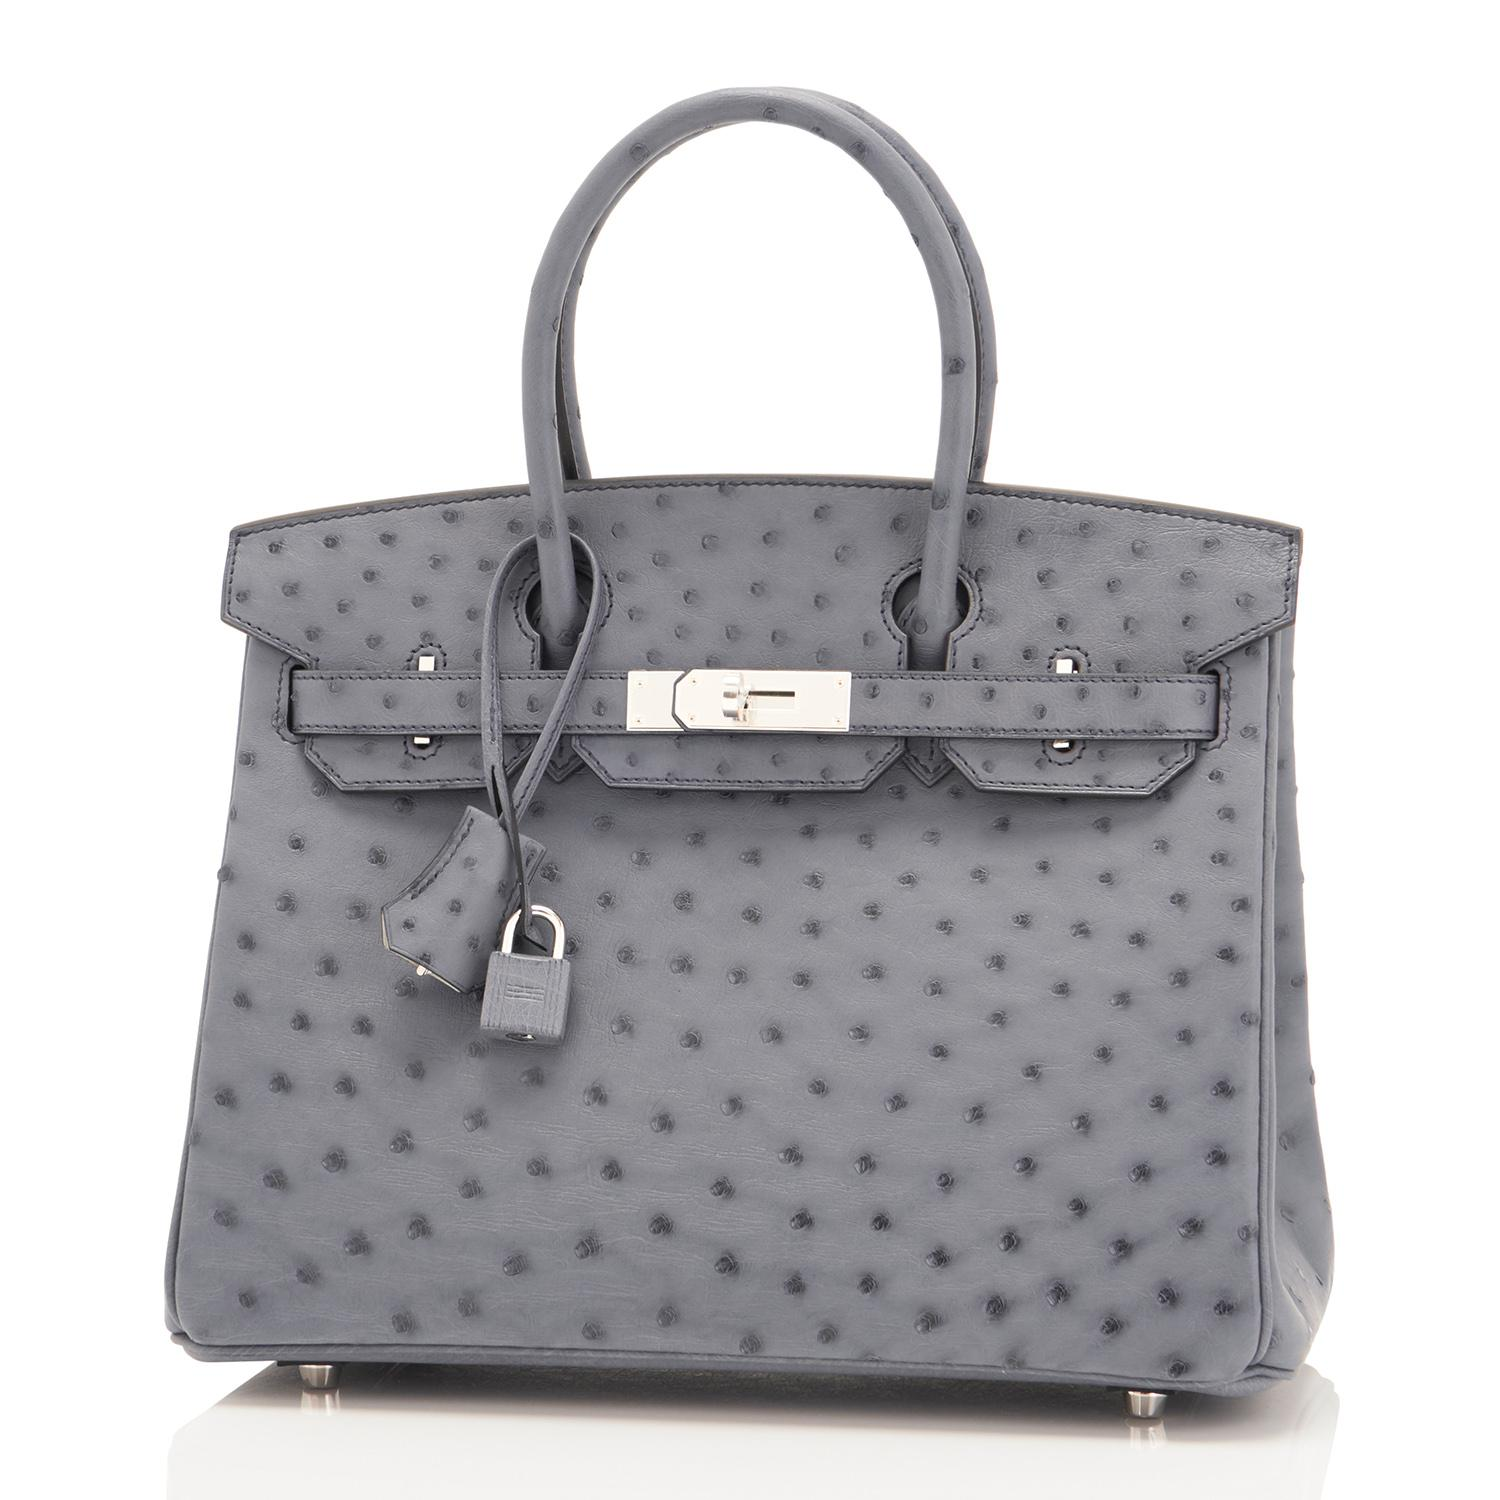 f5f86e76584 ... clearance hermes hss horseshoe gris agate perle ostrich grey c stamp  birkin 30 bag 2018 for